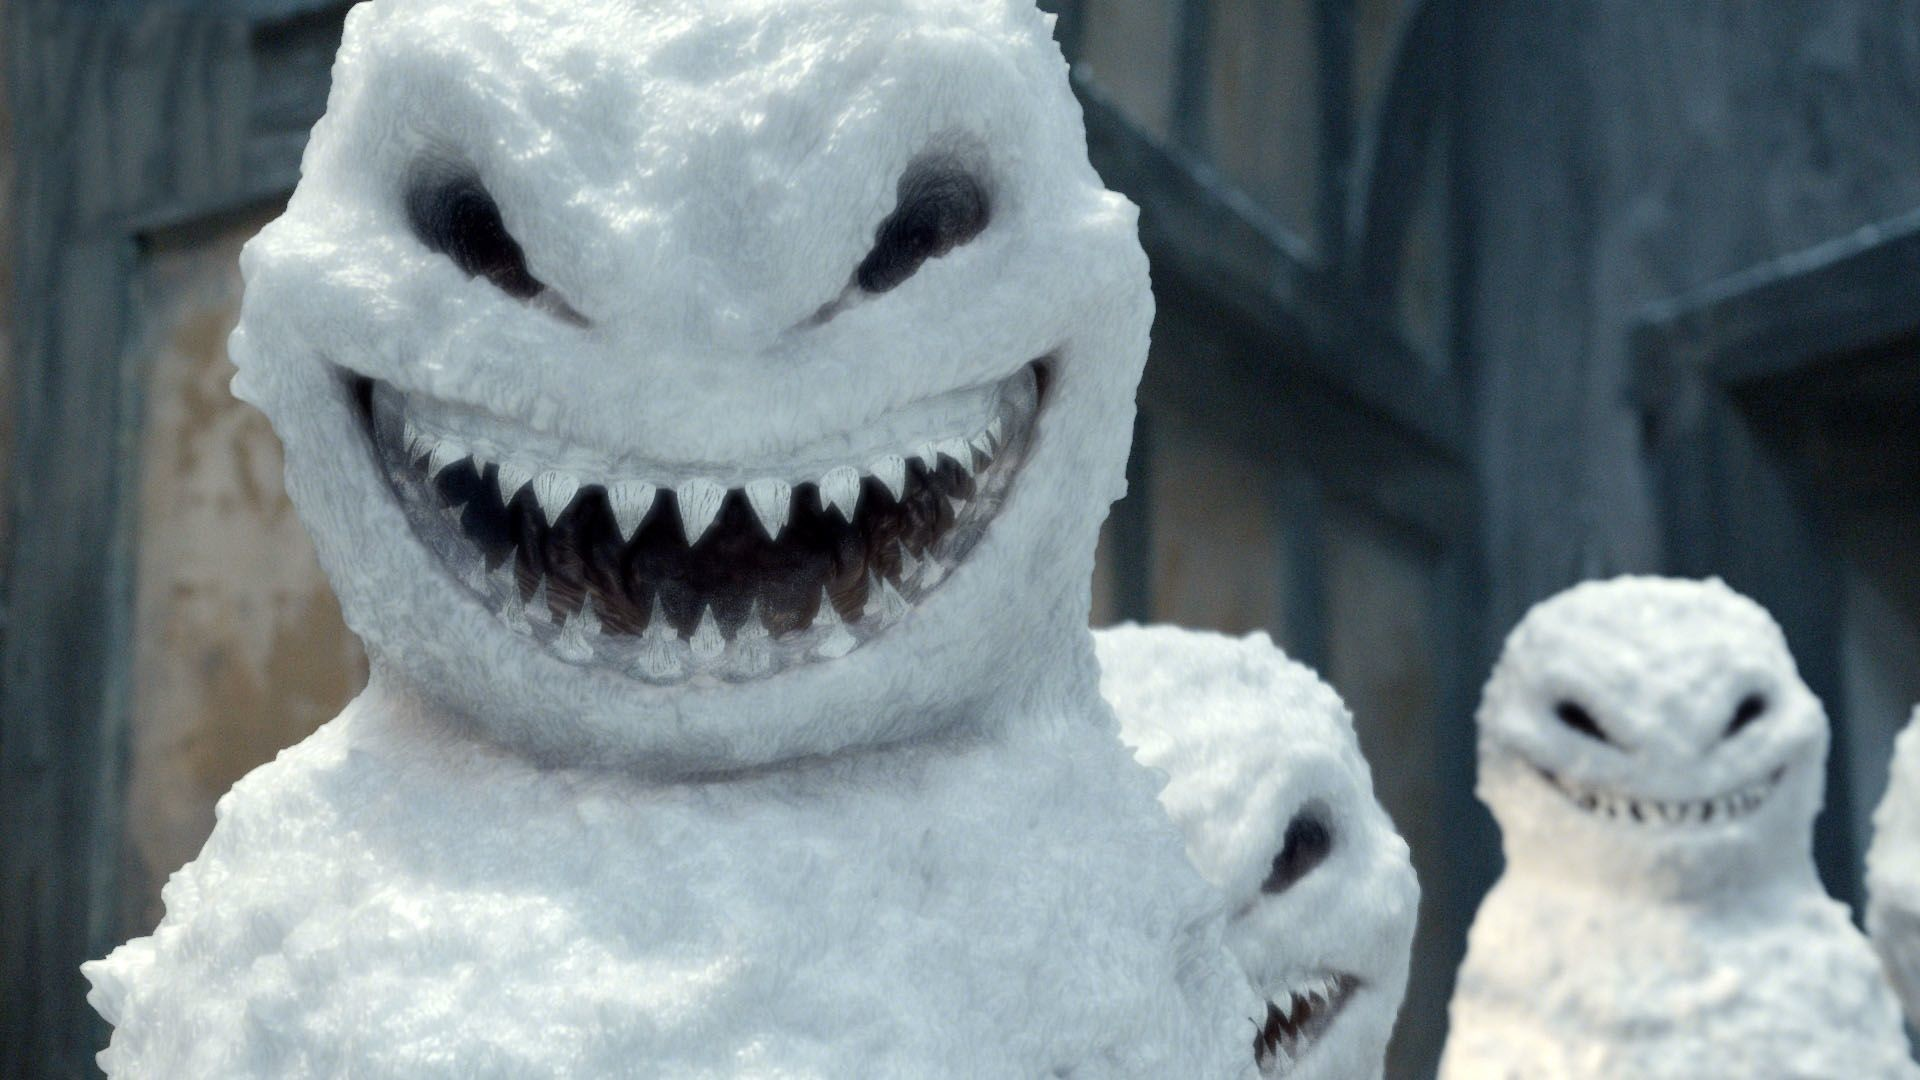 Res: 1920x1080, Merry Christmas from the Doctor's newest enemies - evil snowmen.